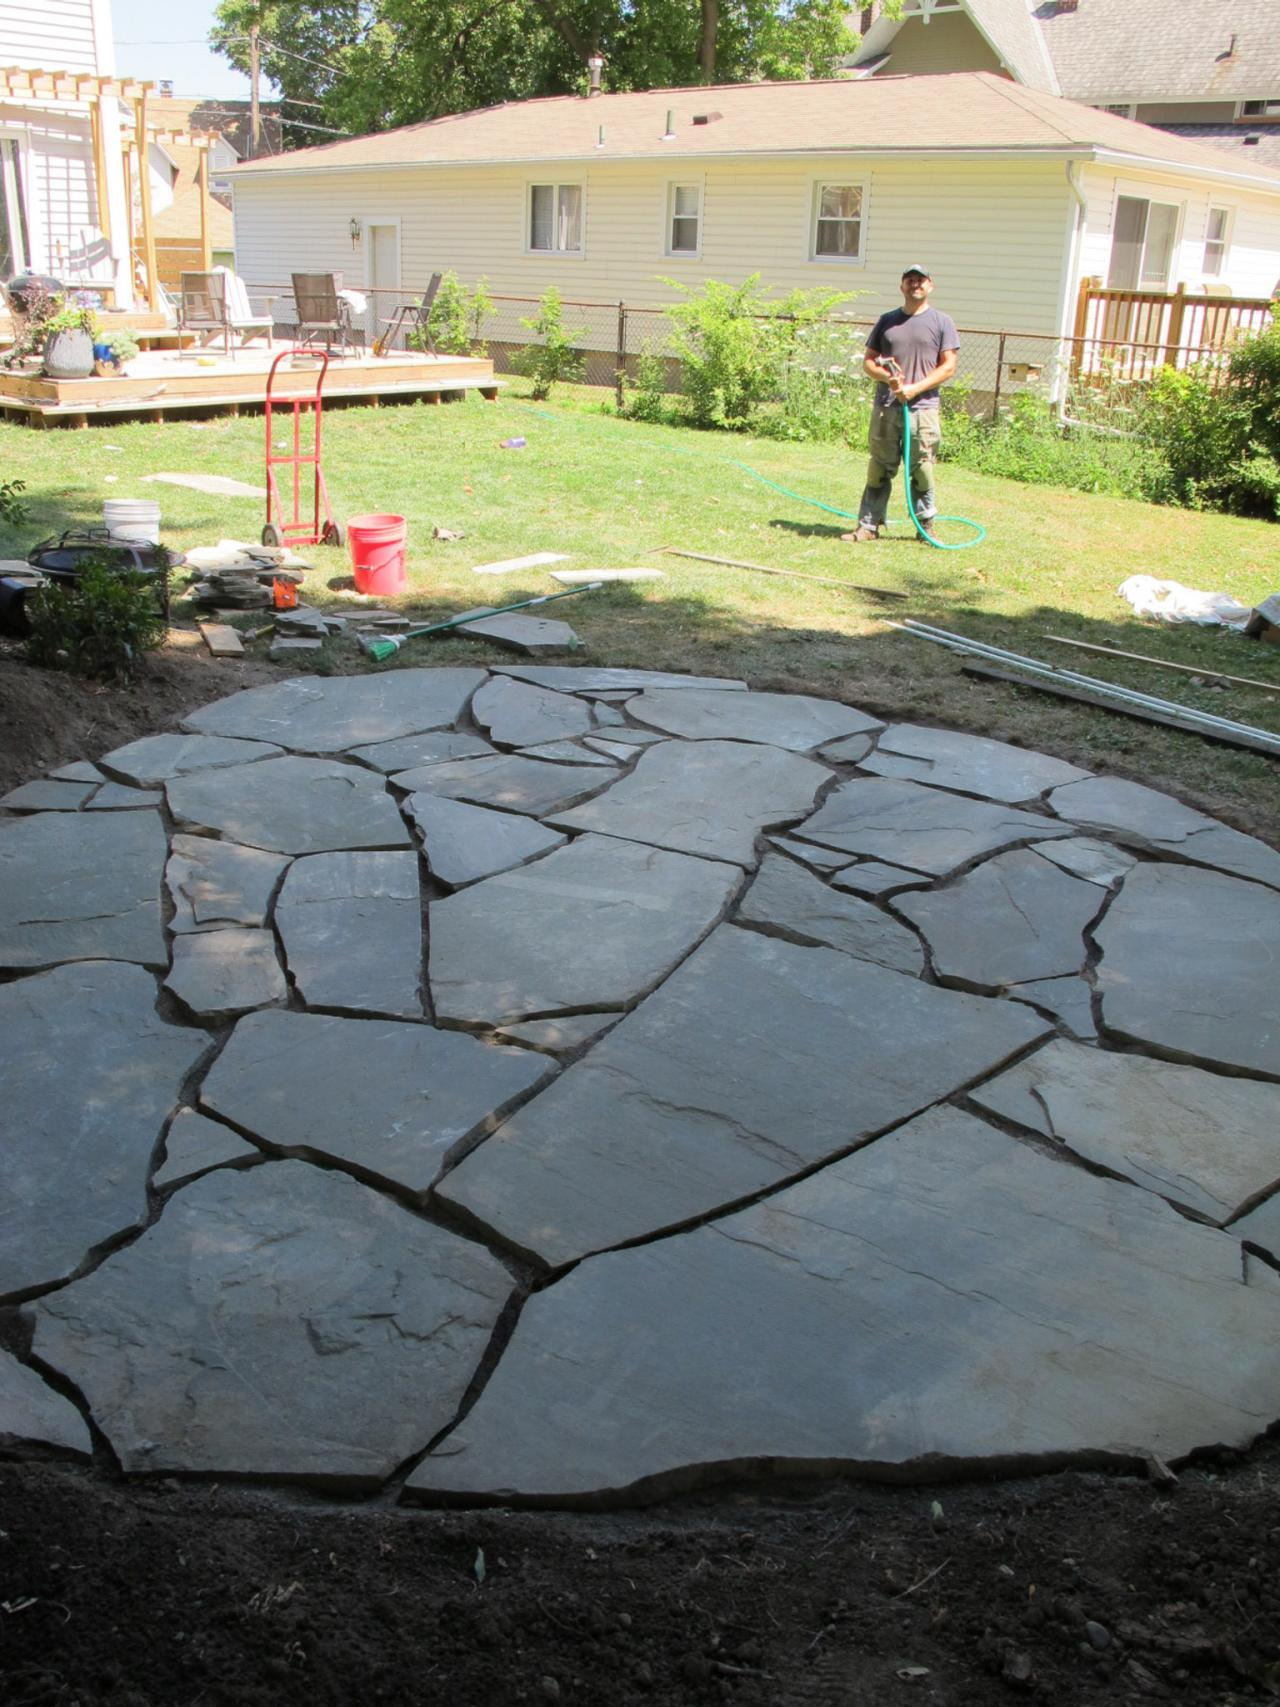 how to install a flagstone patio with irregular stones | diy network blog: STALZHF